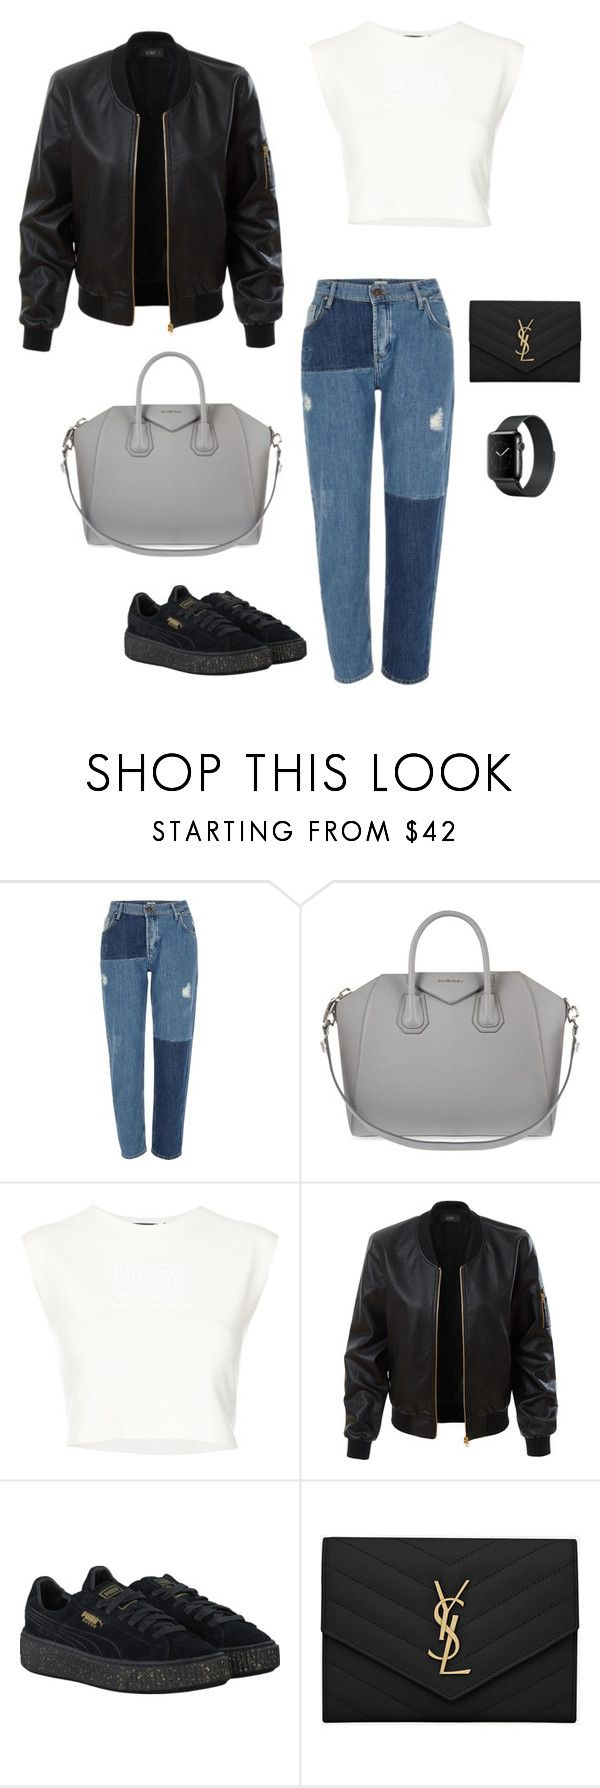 """""""Untitled #477"""" by nadiralorencia on Polyvore featuring River Island, Givenchy, Puma, LE3NO and Yves Saint Laurent"""